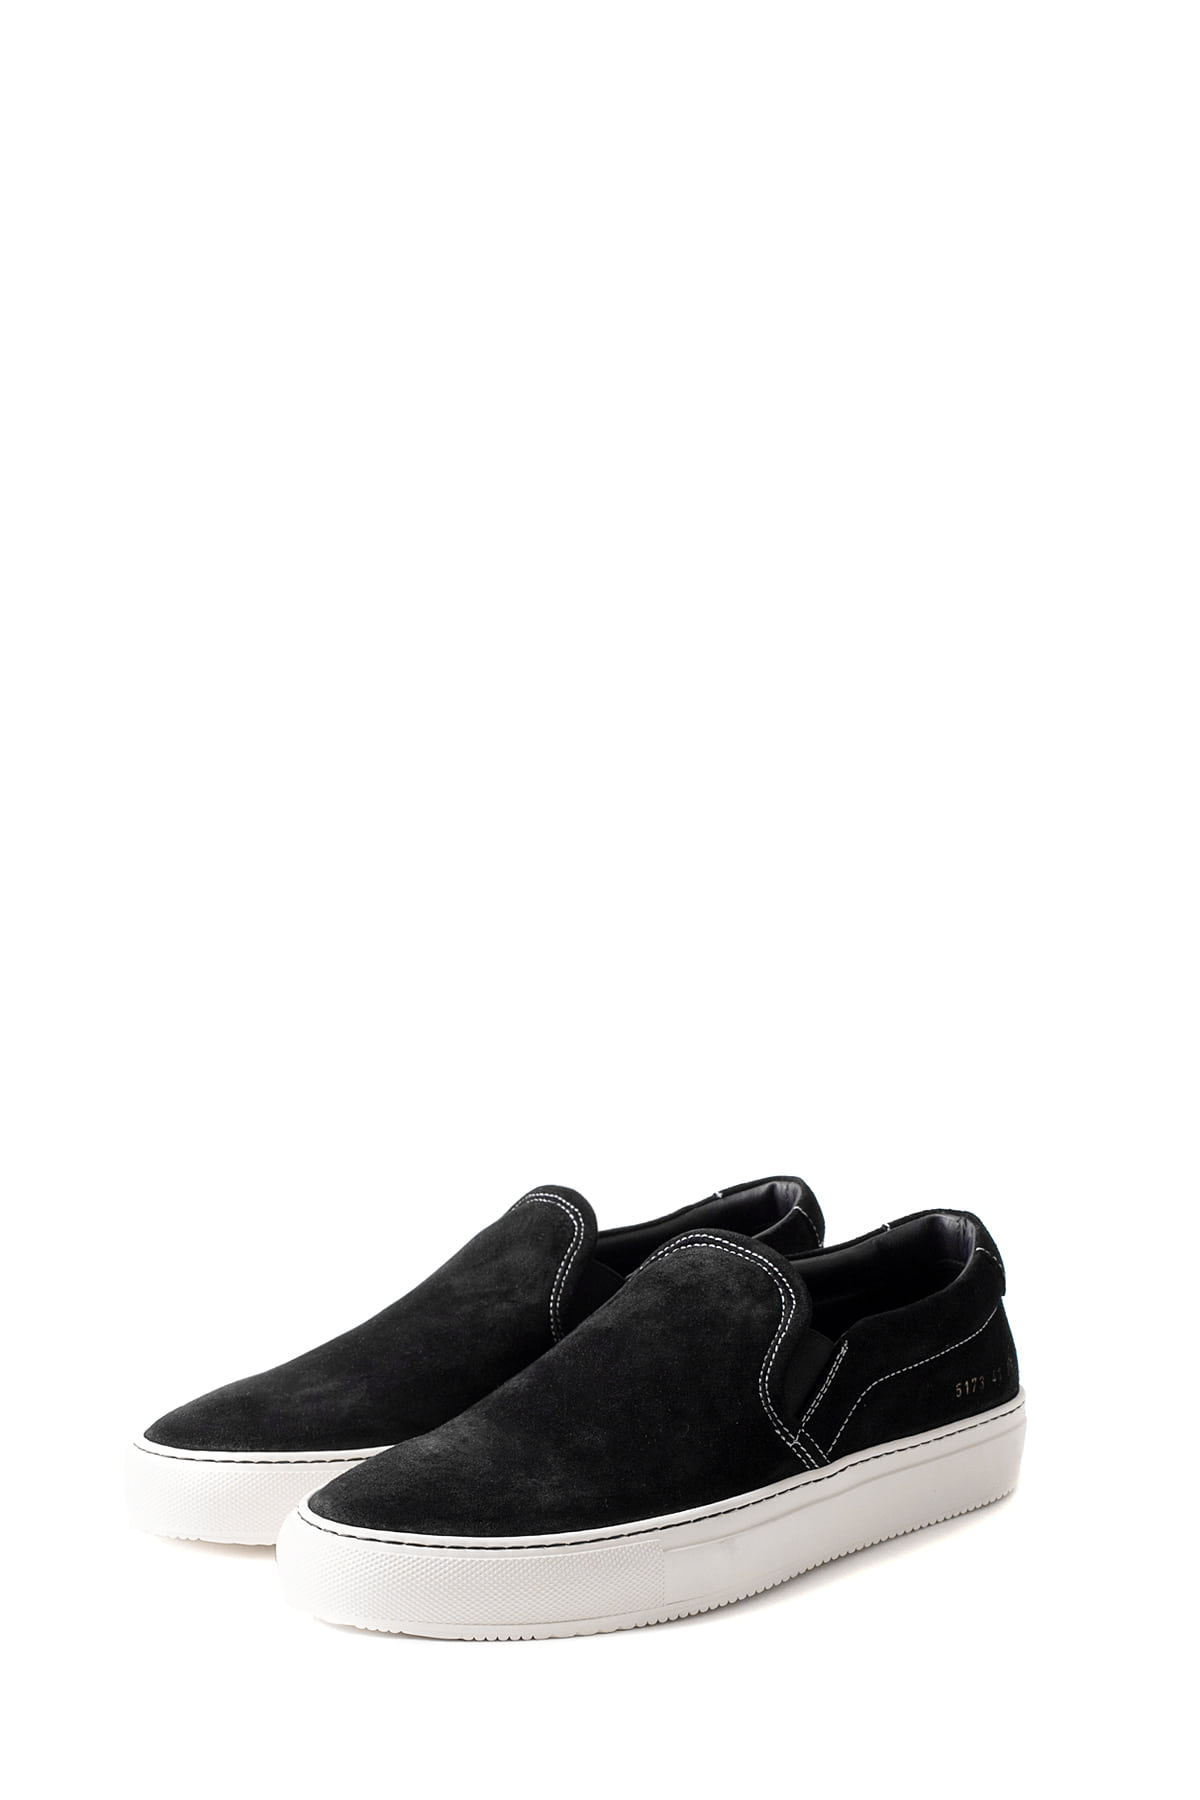 Common Projects : Slip On In Suede 5173 (Black)